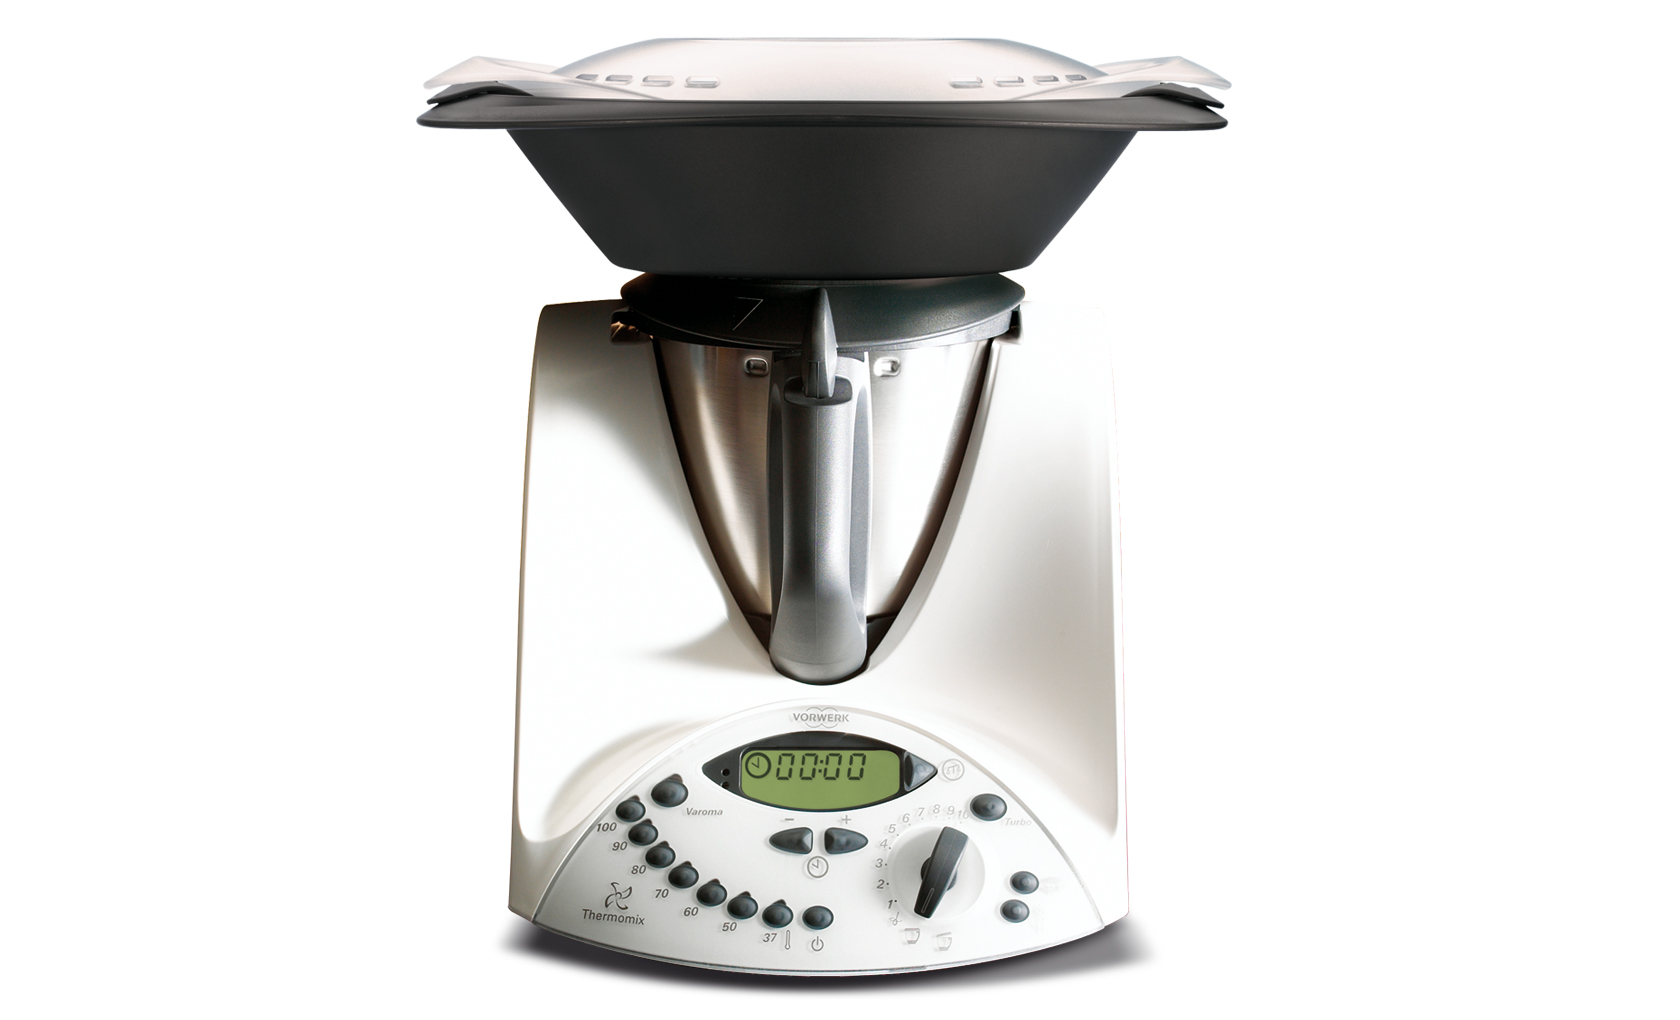 La Thermomix sigue triunfando